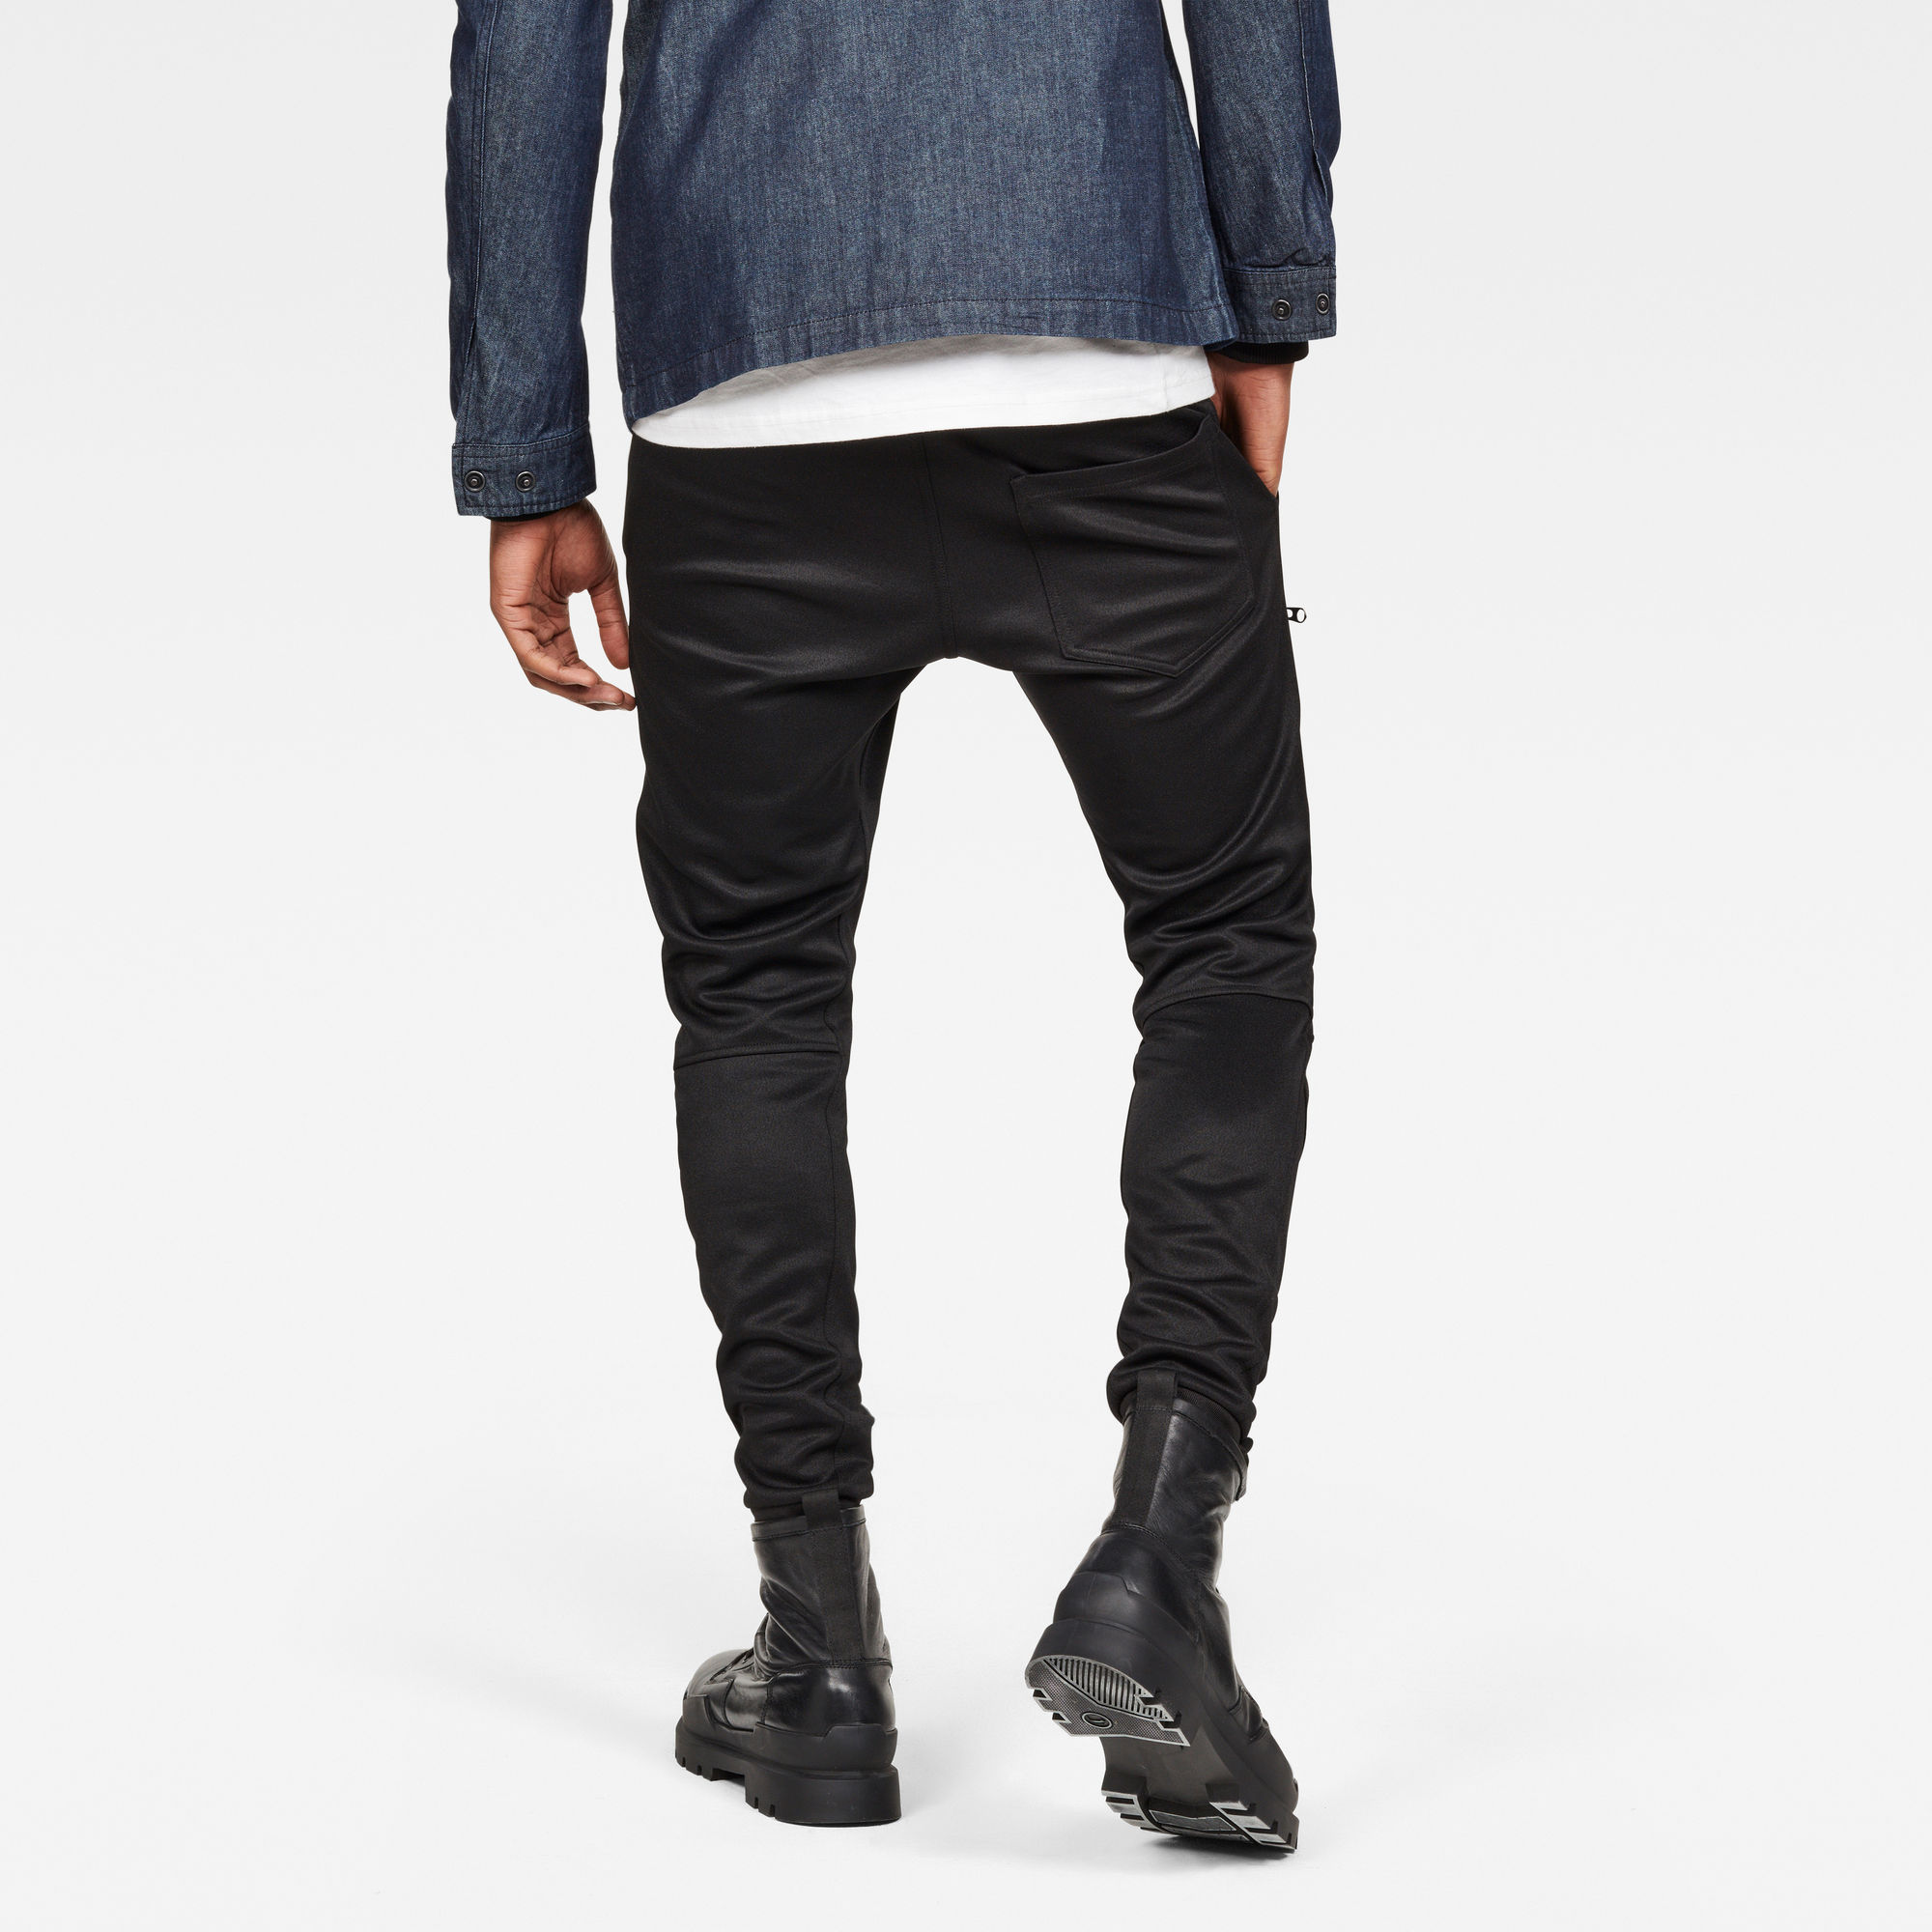 G-Star RAW Air Defence Zip 3D Slim Sweatpant